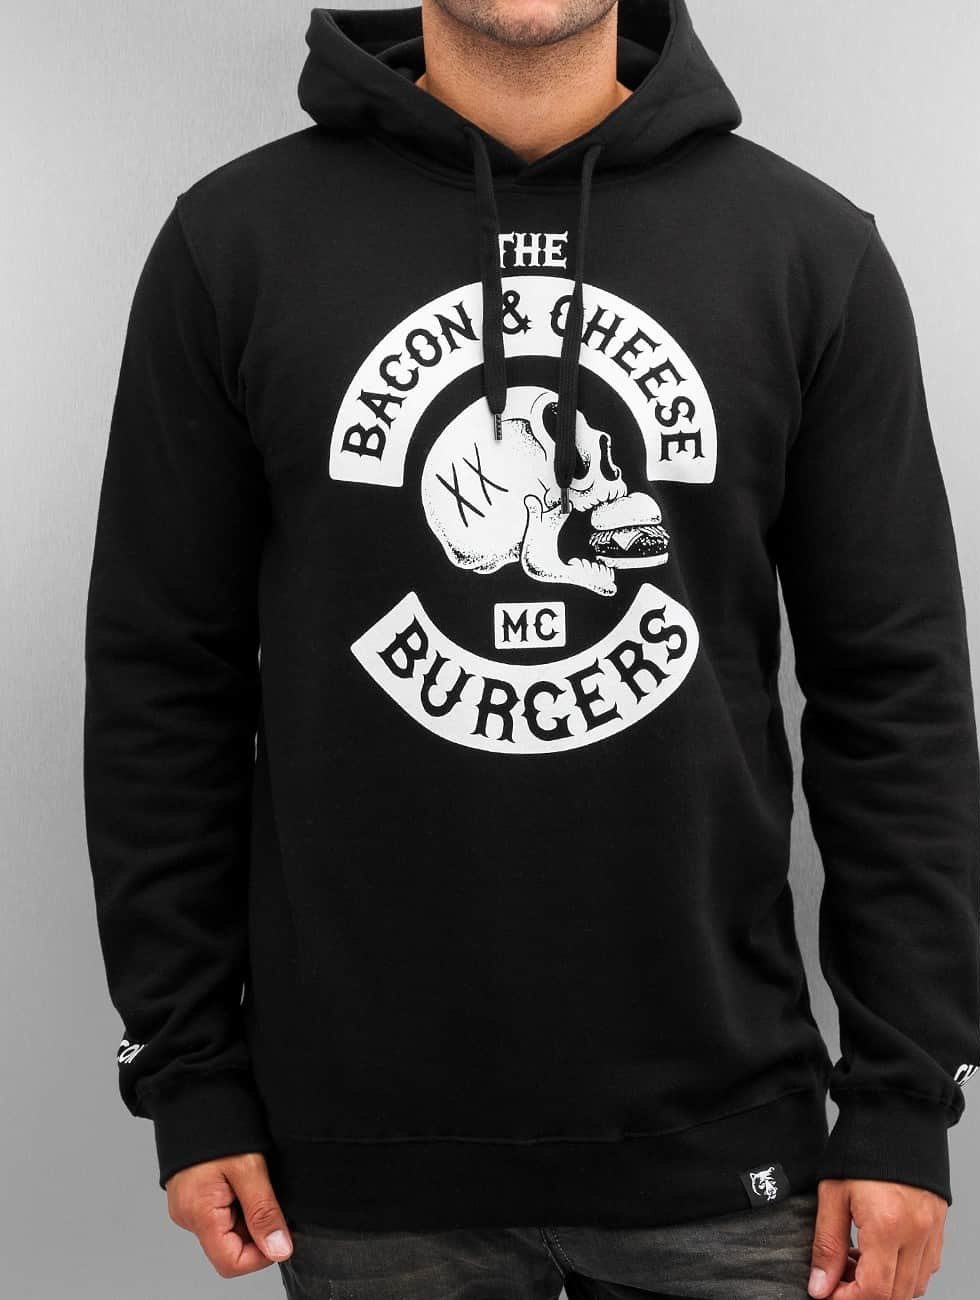 The Dudes Hoodie Bacon Cheese Burgers black